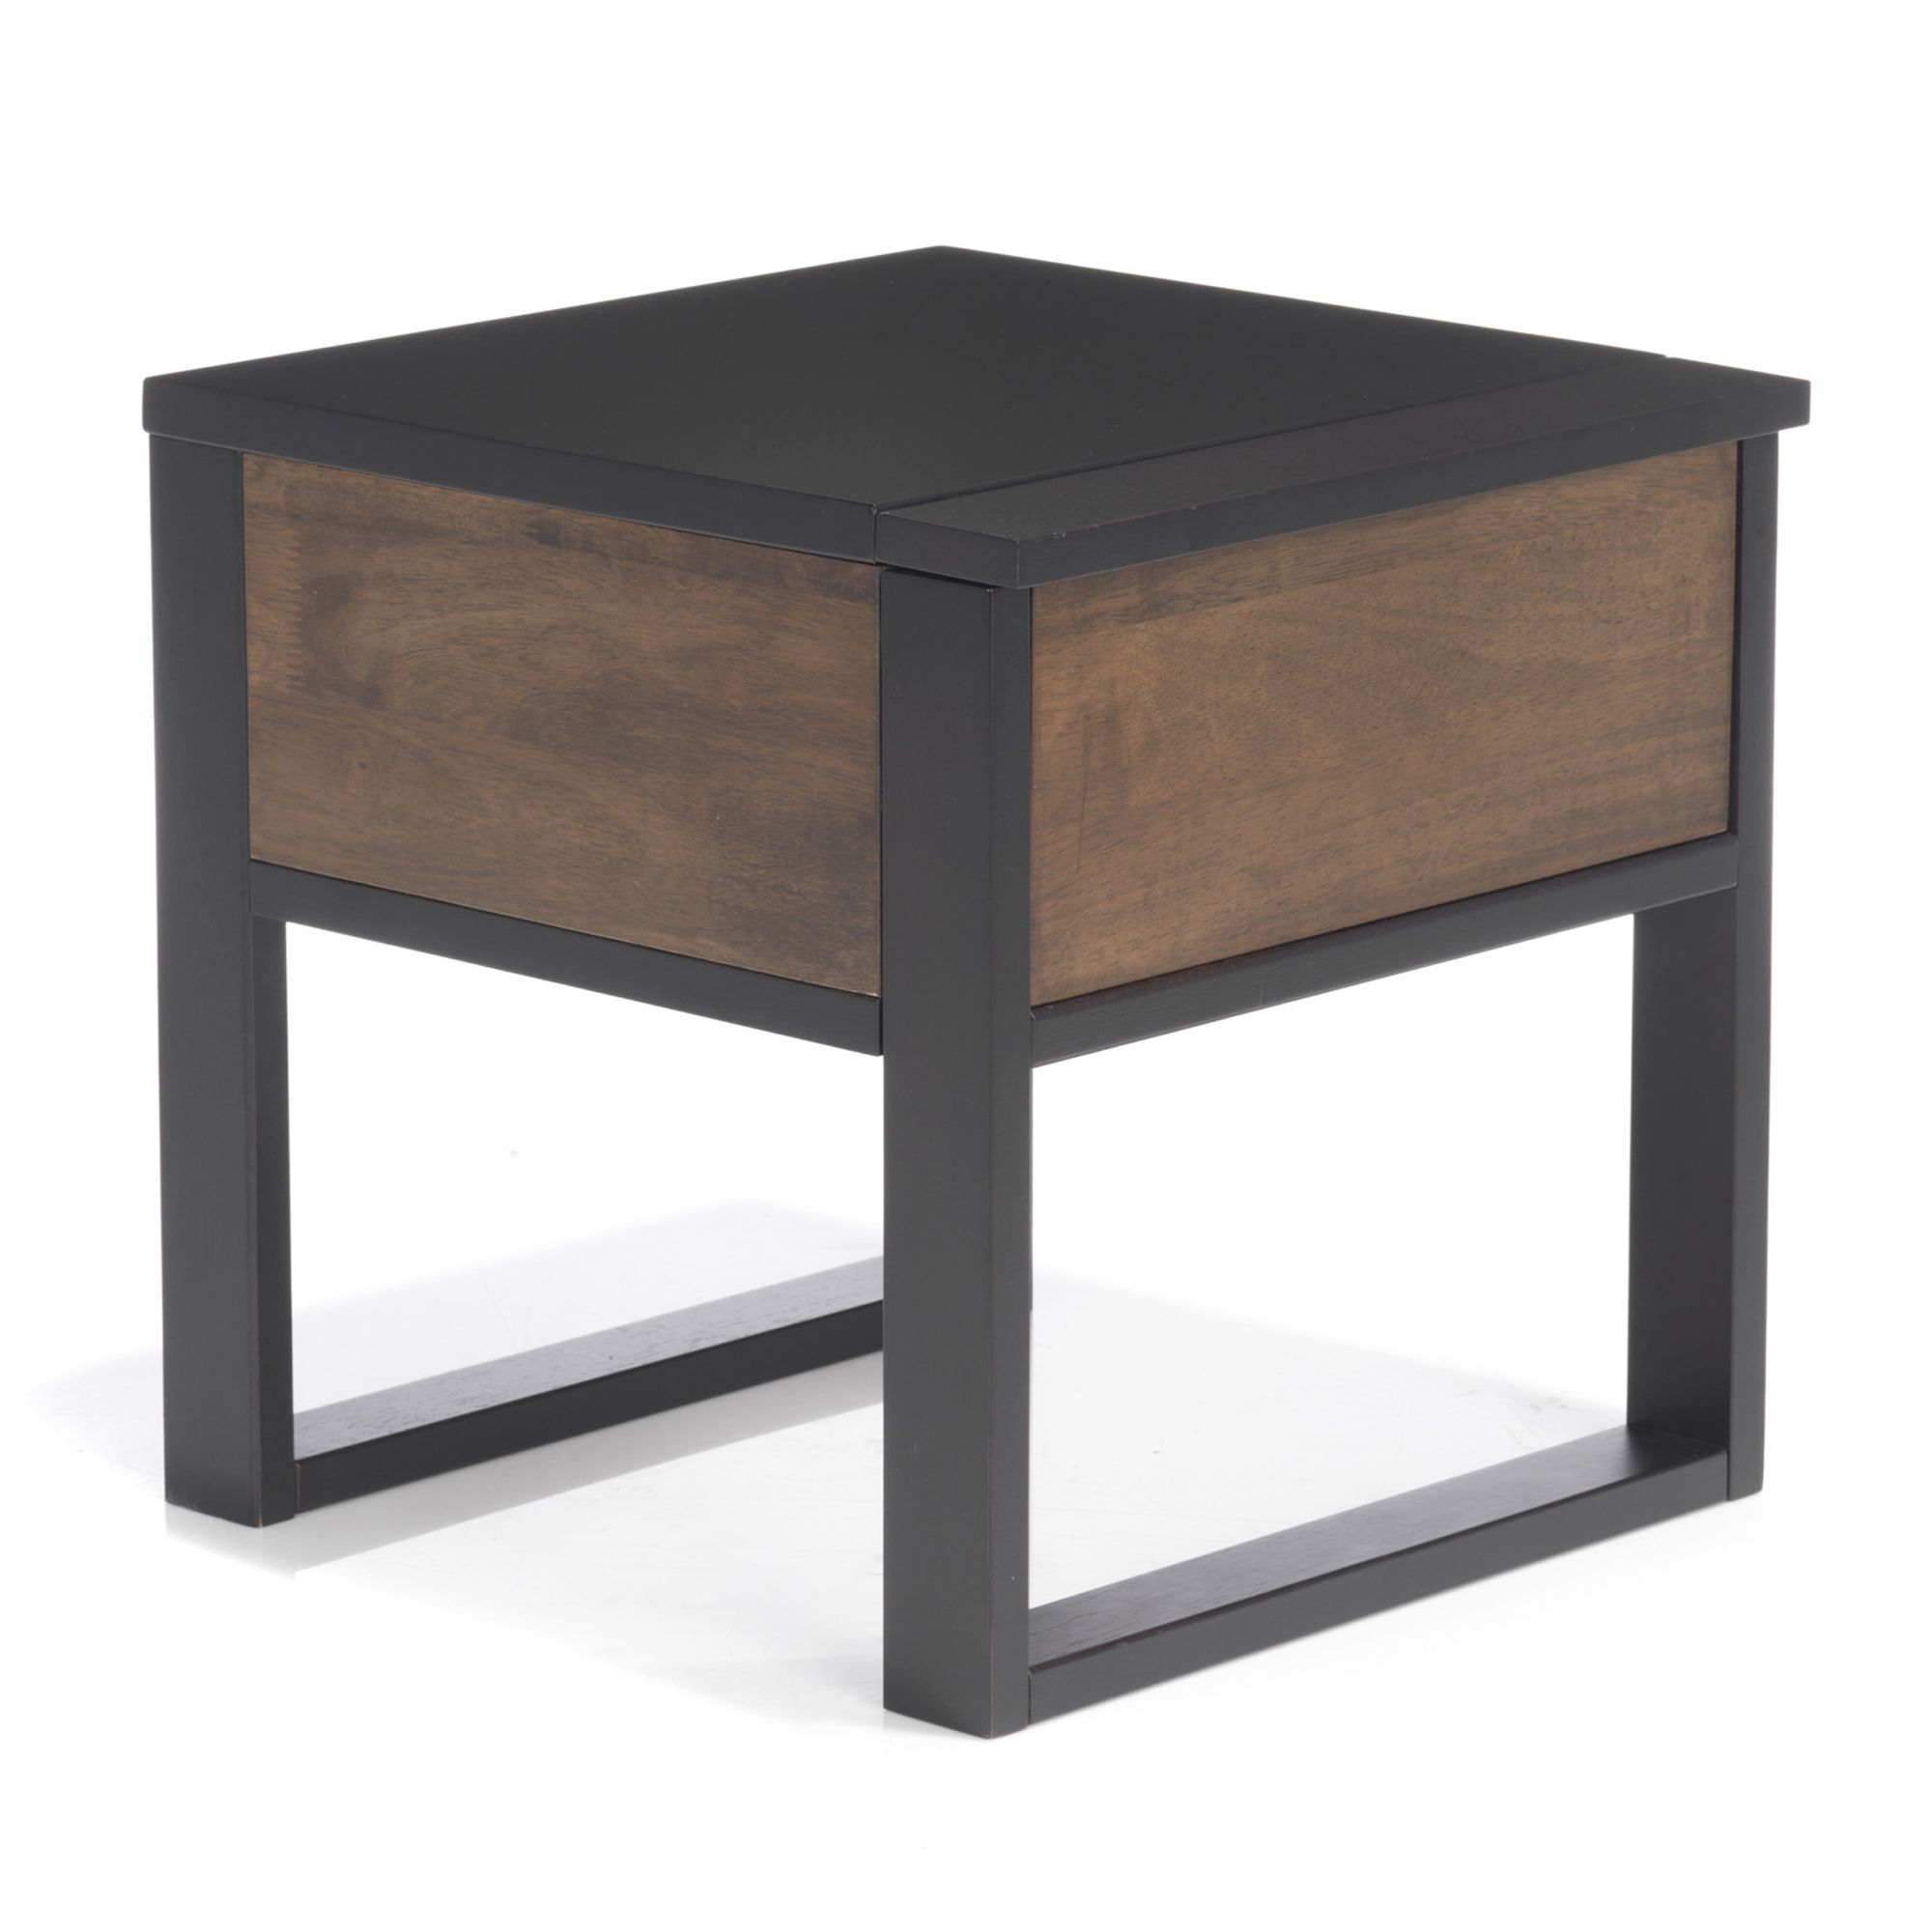 Table de chevet 1 tiroir noyer dor et weng spirit tables de chevet to - Deco table de chevet ...